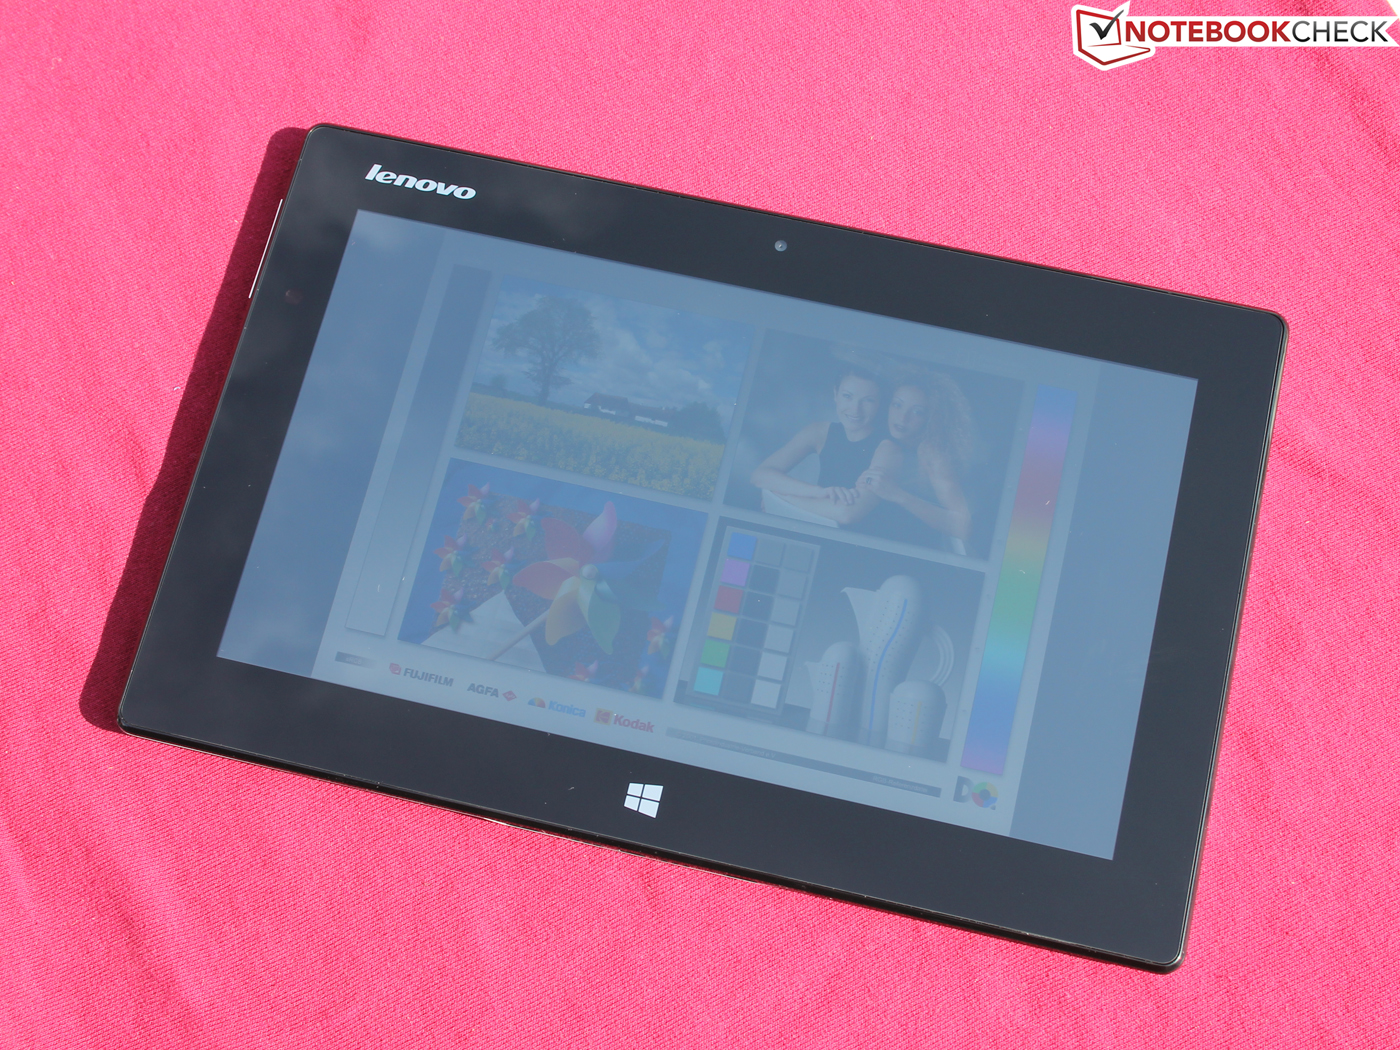 test lenovo ideatab miix 10 64gb tablet notebookcheck. Black Bedroom Furniture Sets. Home Design Ideas